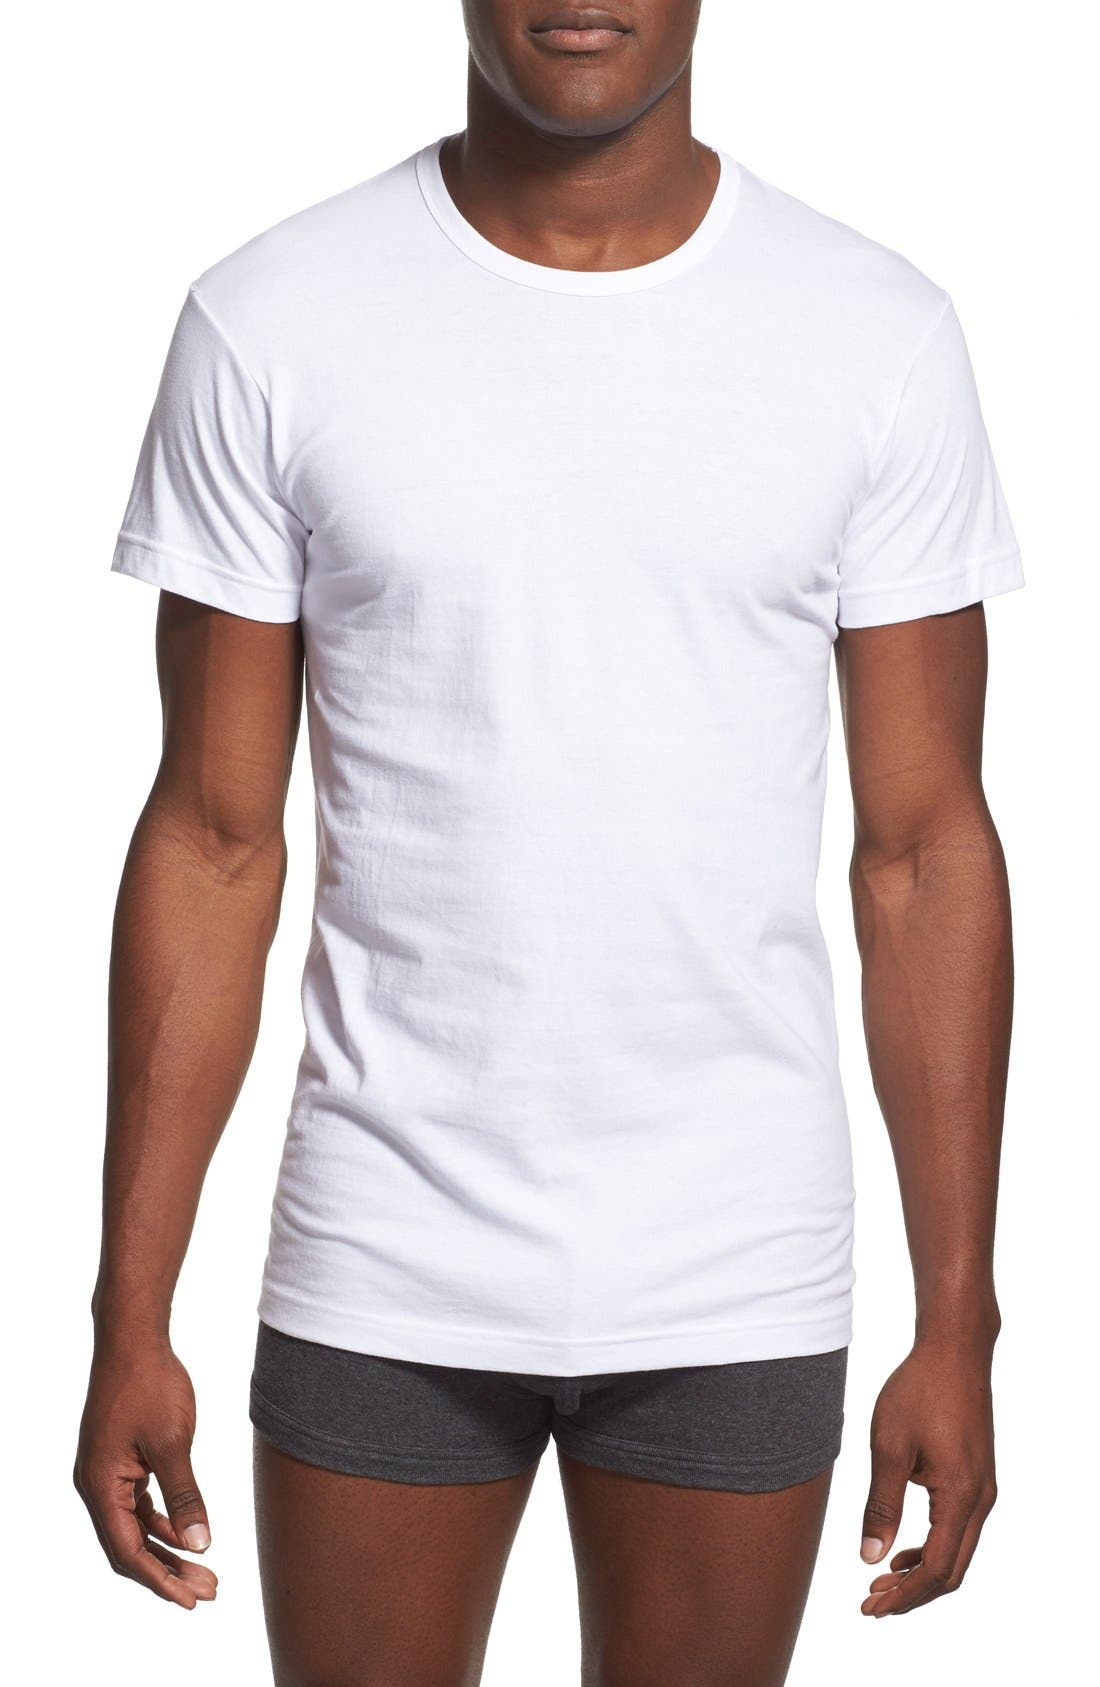 2(x)ist Slim Fit 3-Pack Cotton T-Shirt